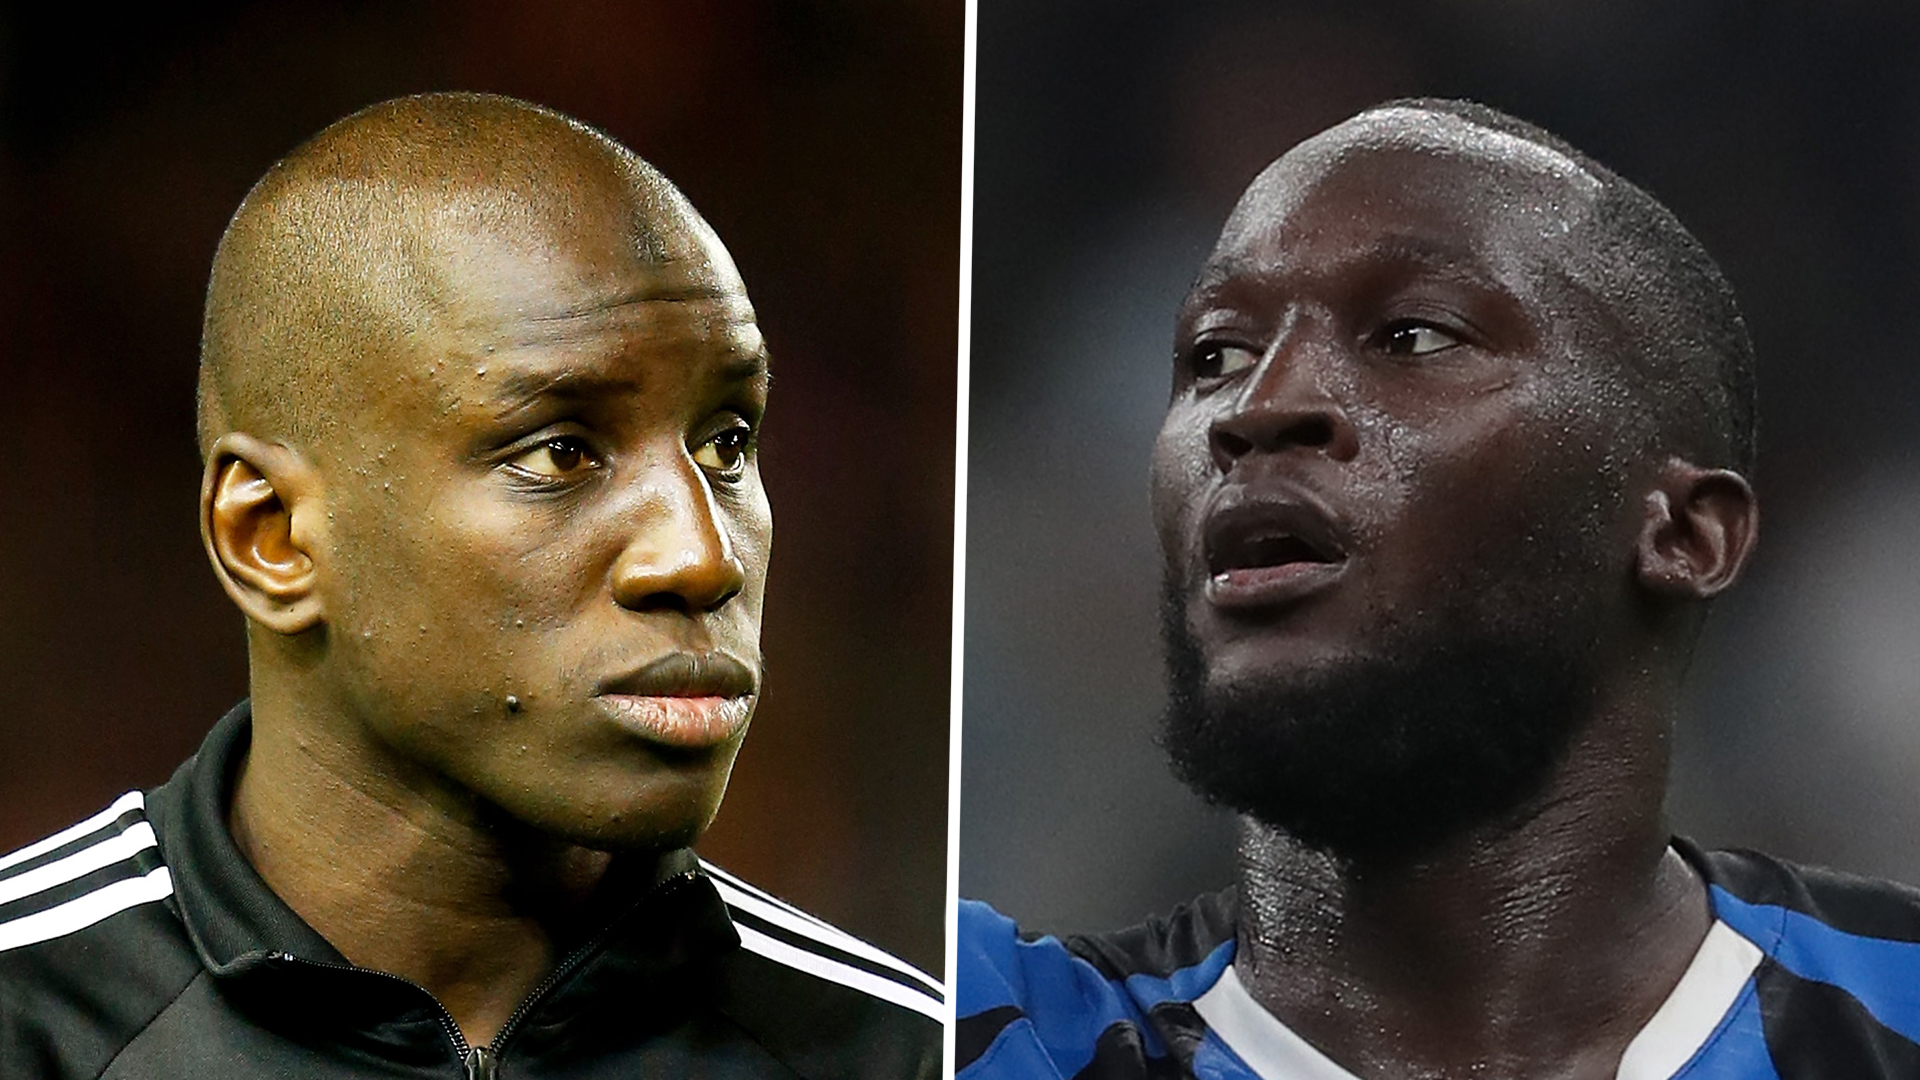 'I wish all black players would get out of Serie A' - Demba Ba astonished at Curva Nord's letter to Lukaku over racism